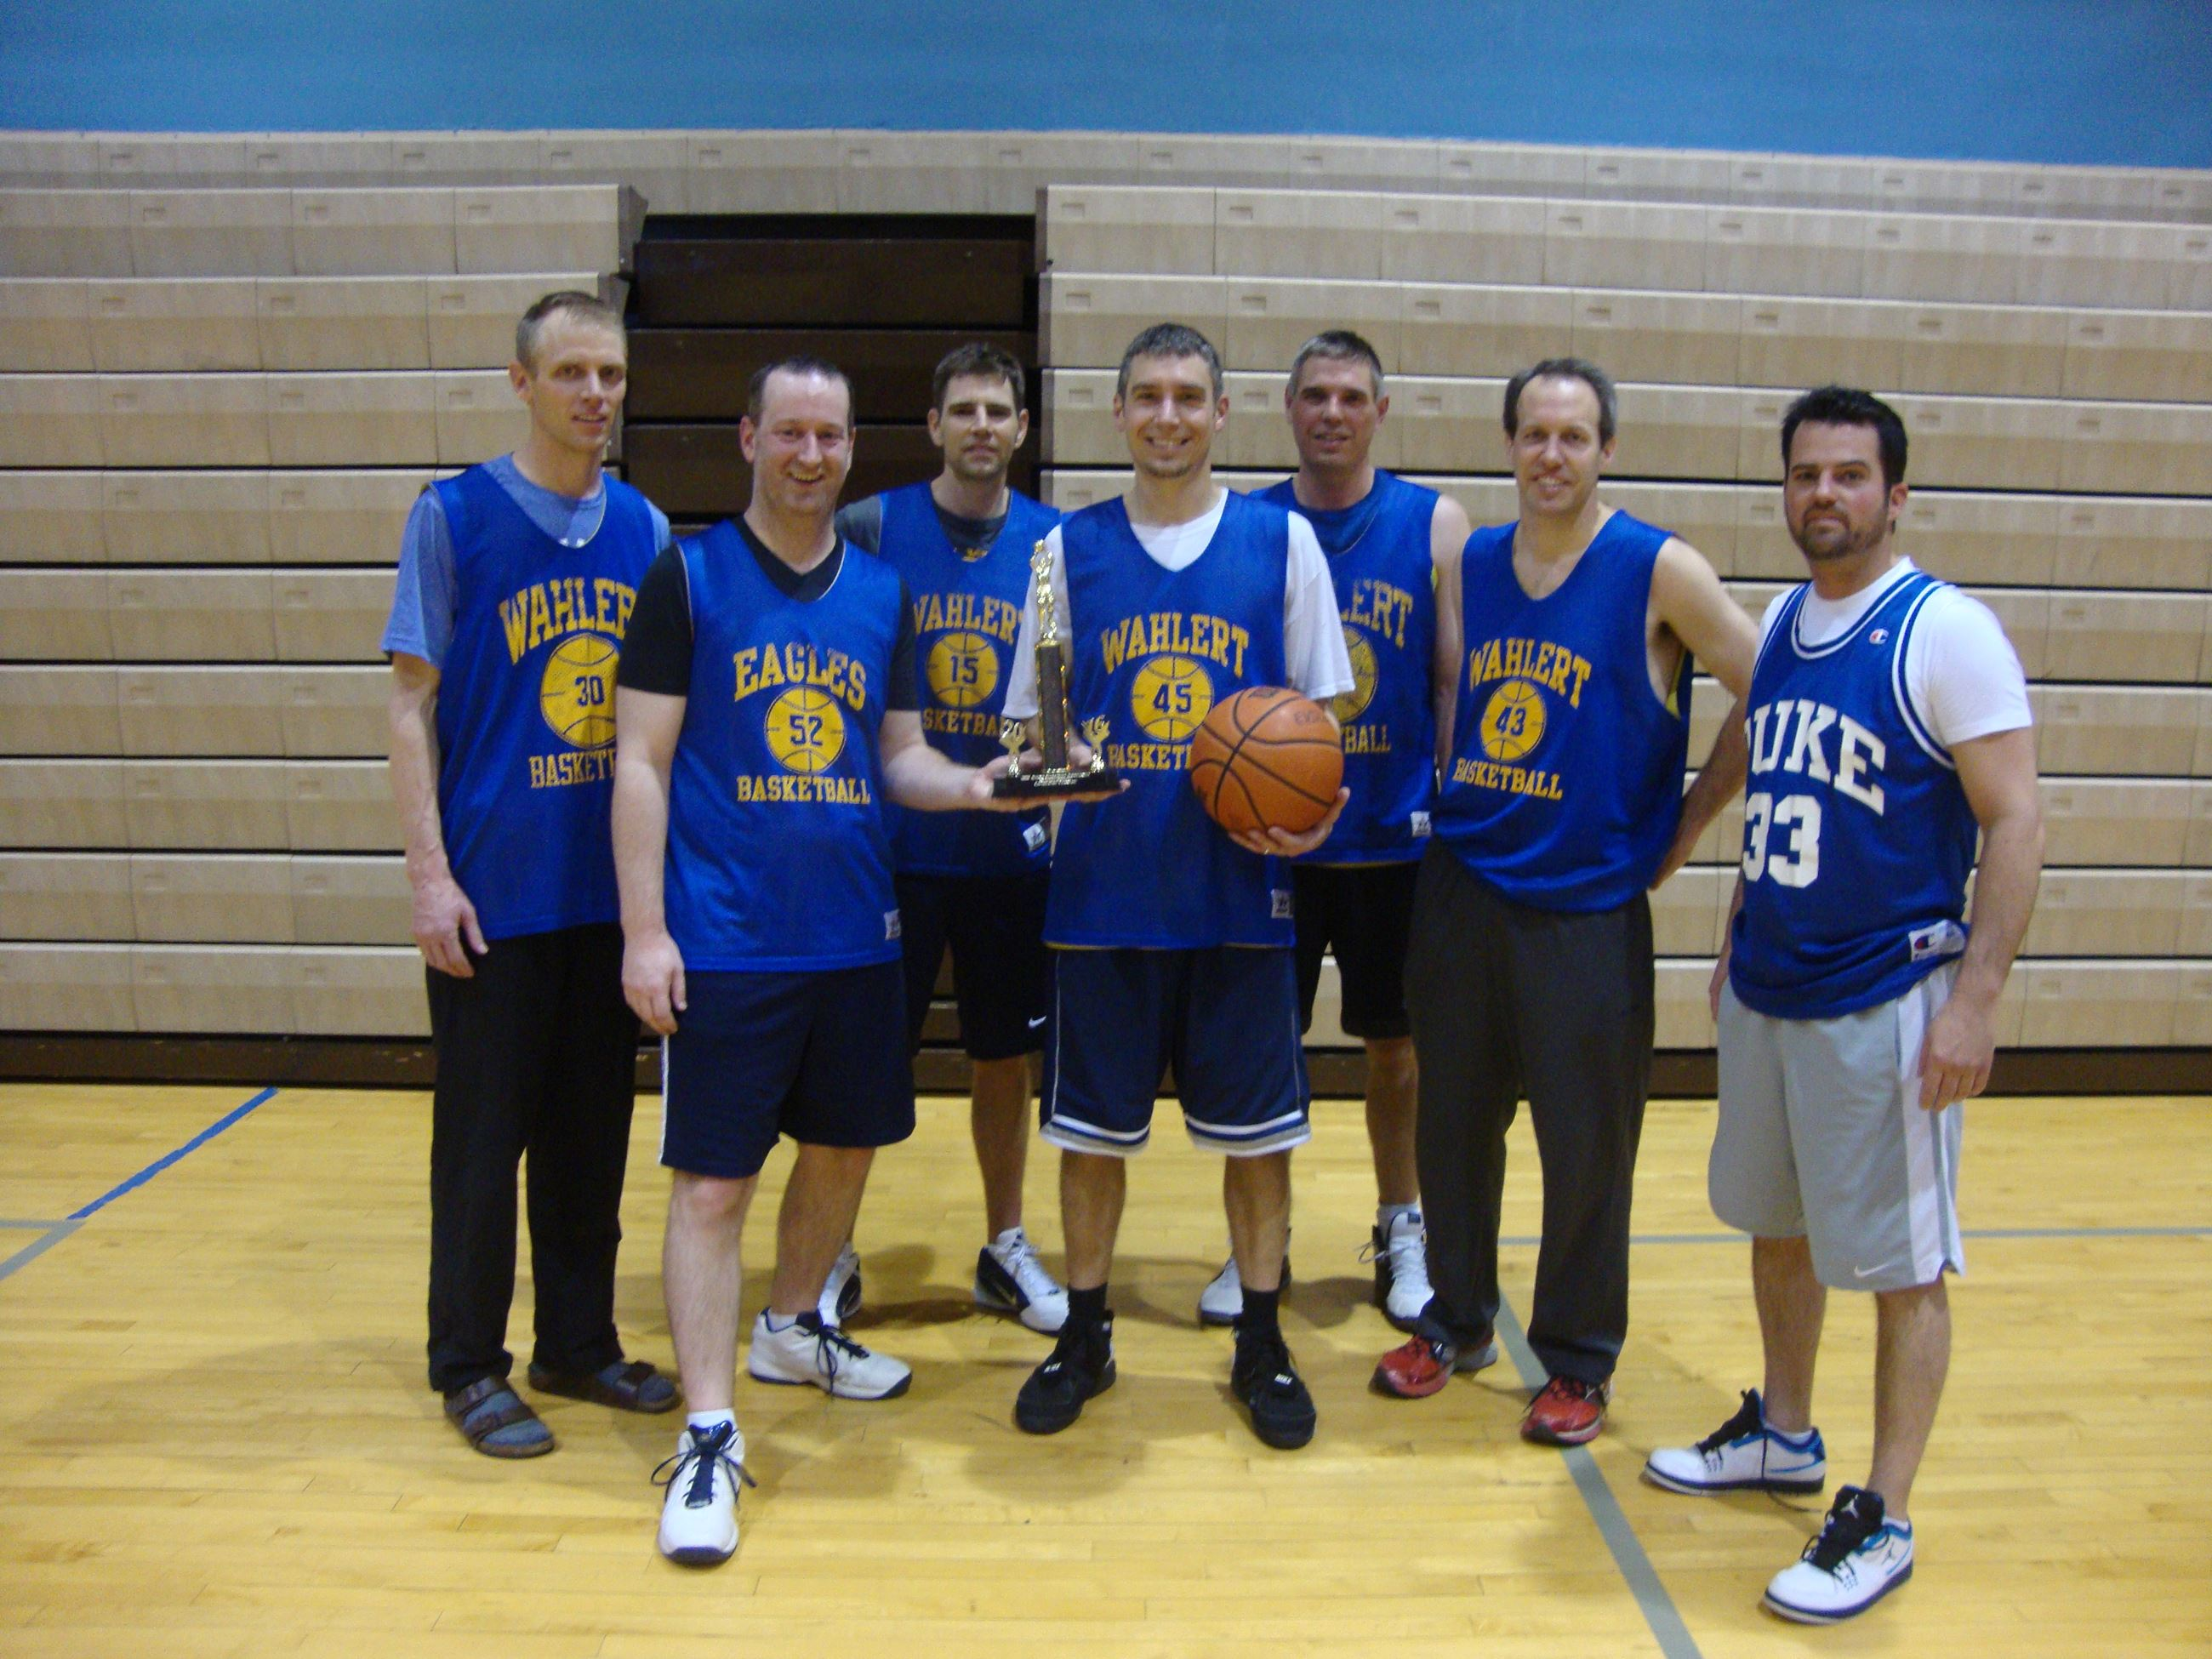 Wahlert 94 - Masters Division Consolation Champion